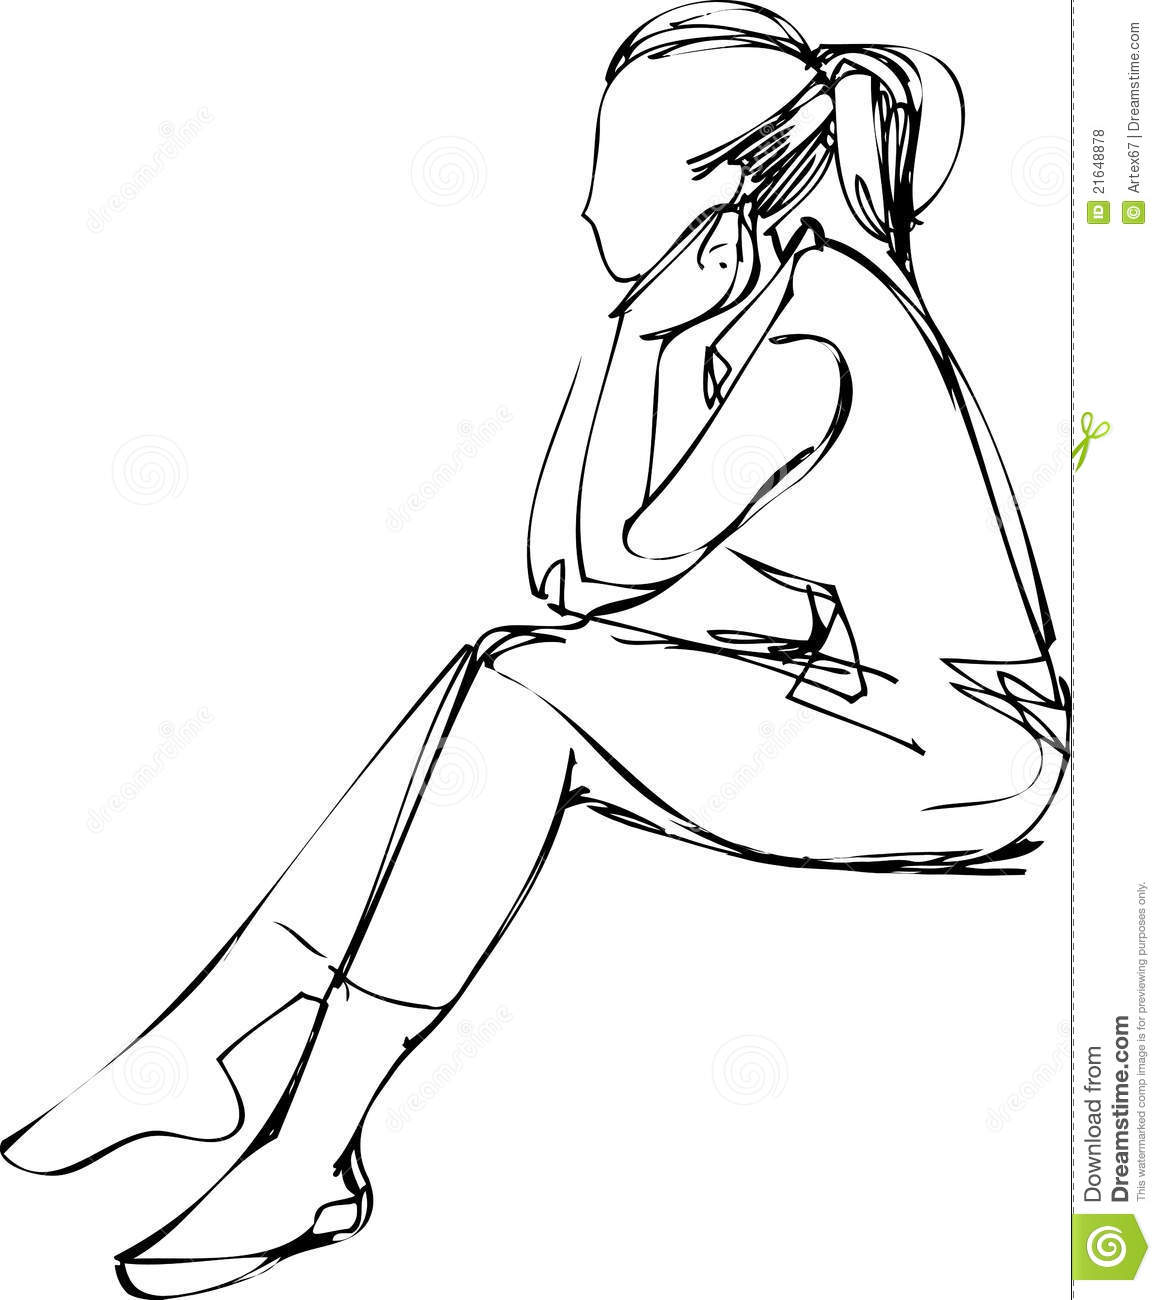 Sketch Of A Girl Who Thought Sitting Royalty Free Stock